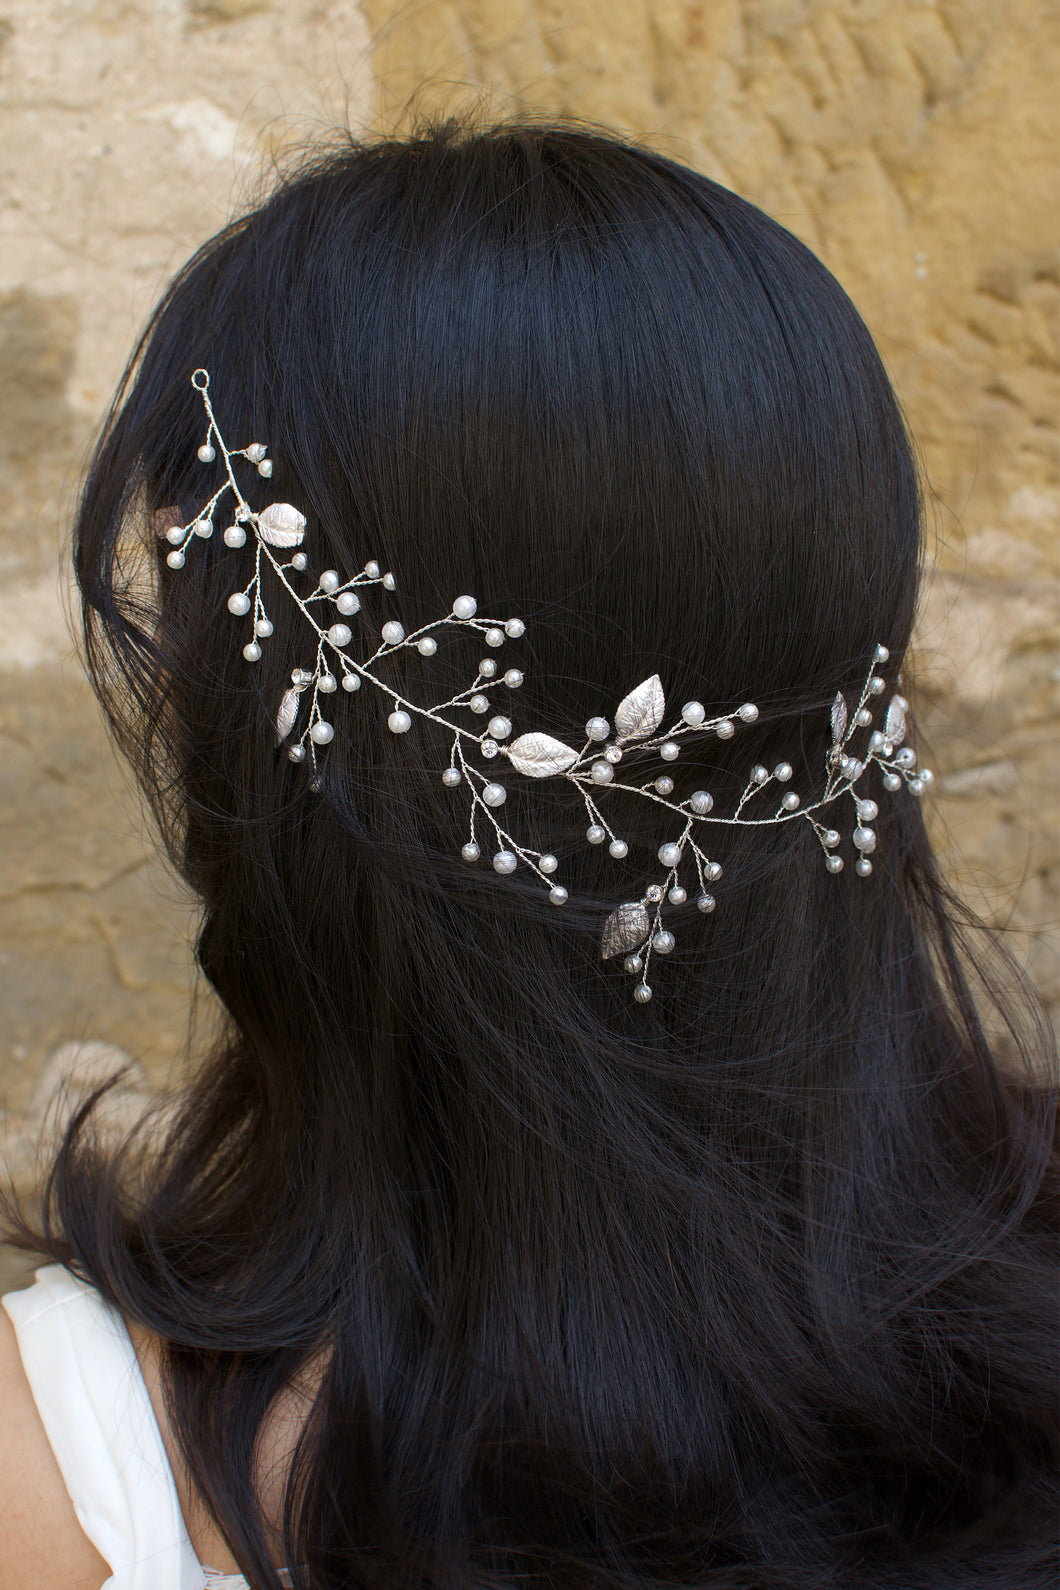 A black hair model wears a silver bridal vine on the back of her head with leaves and pearls